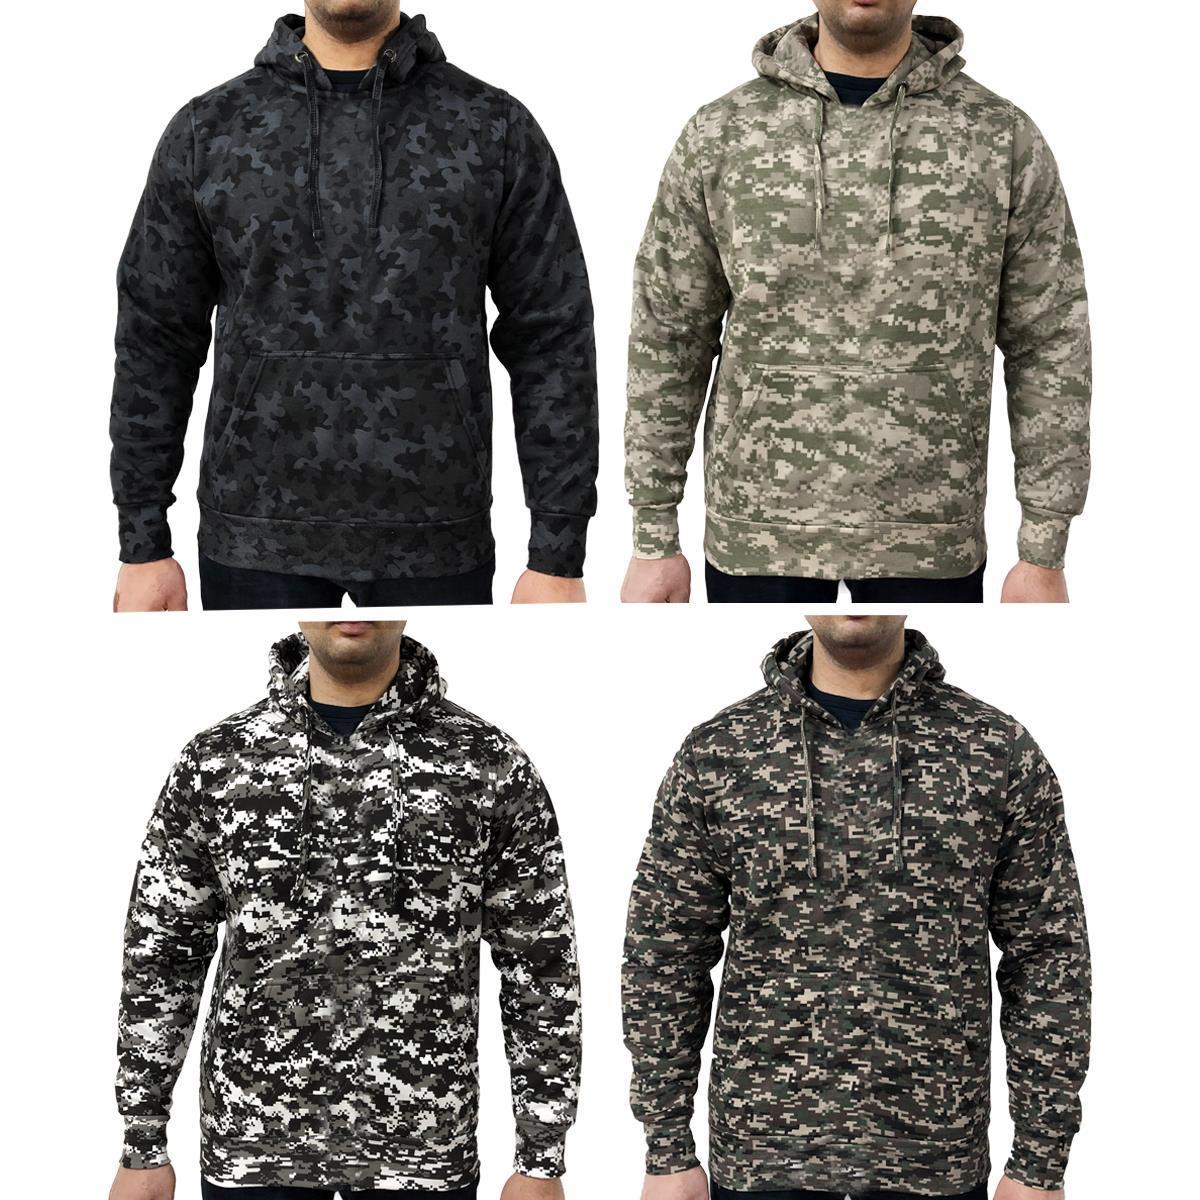 d863545bd0d56 Details about Game Mens Military Camo Hoodie Digital Camouflage Hooded Top